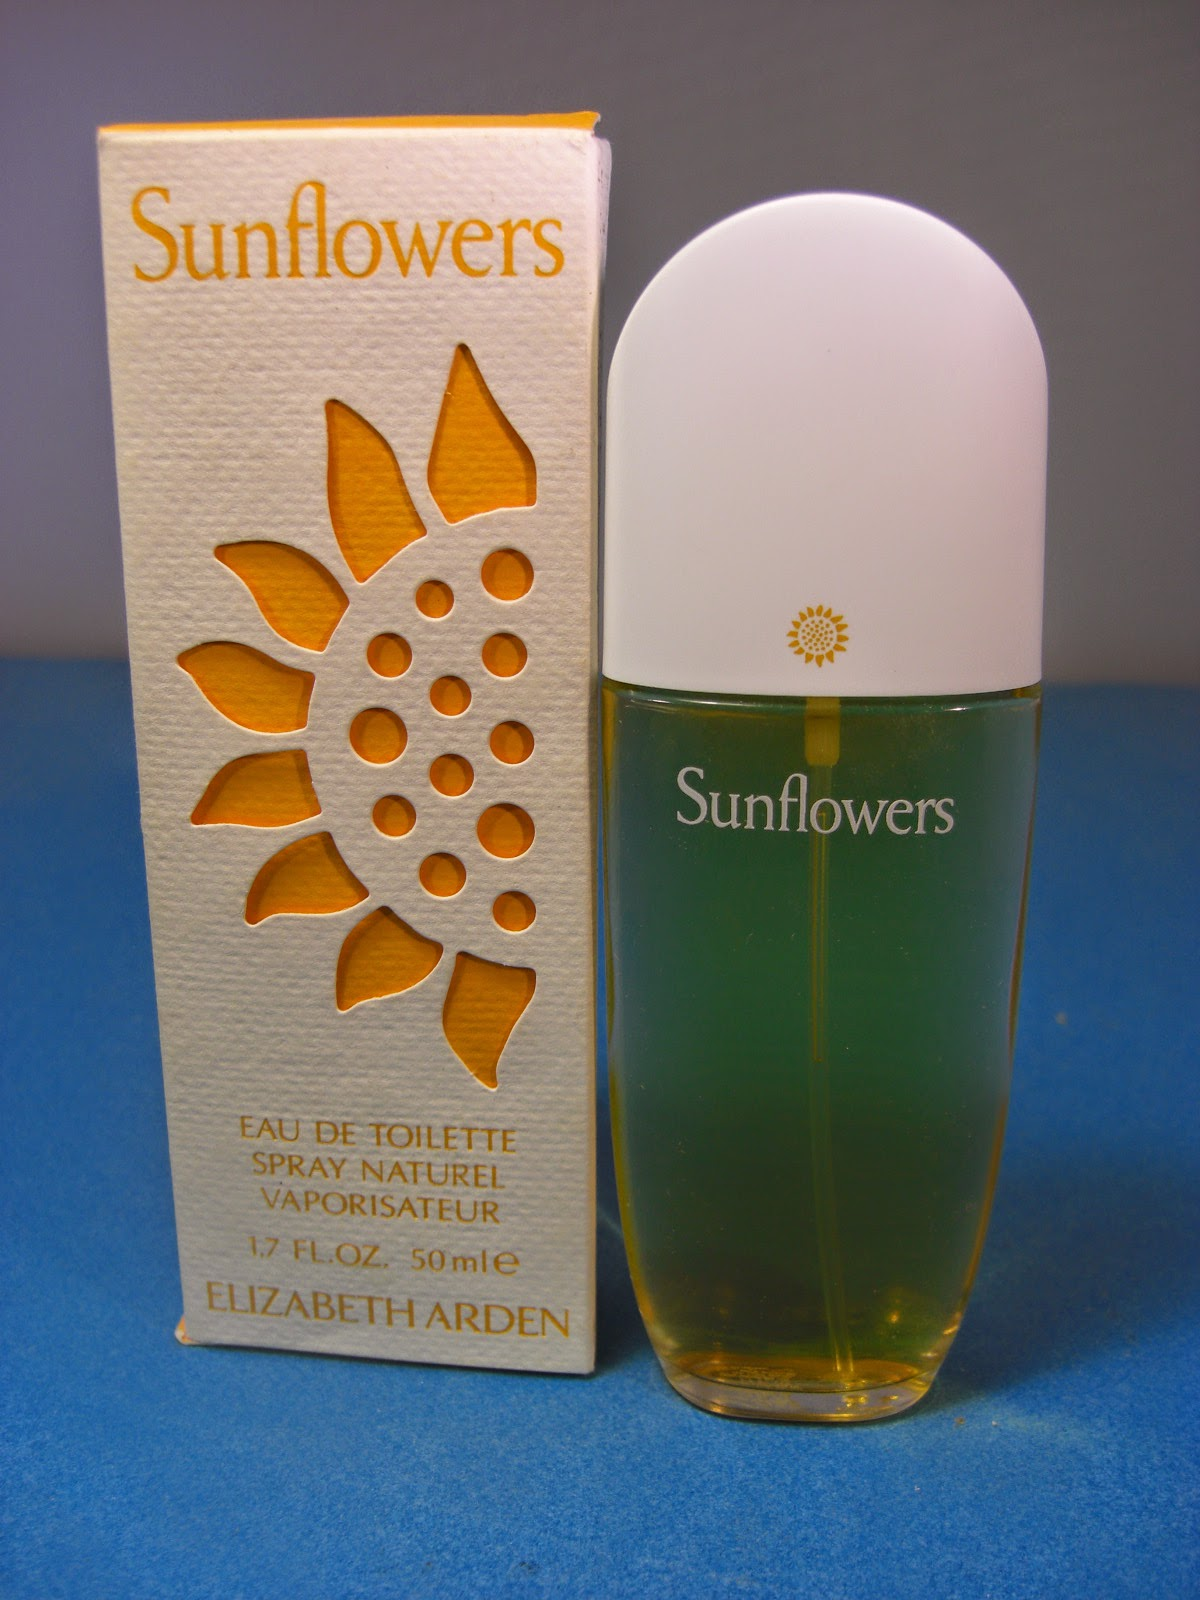 http://bargaincart.ecrater.com/p/11839727/sunflowers-eau-de-toilette-17-oz